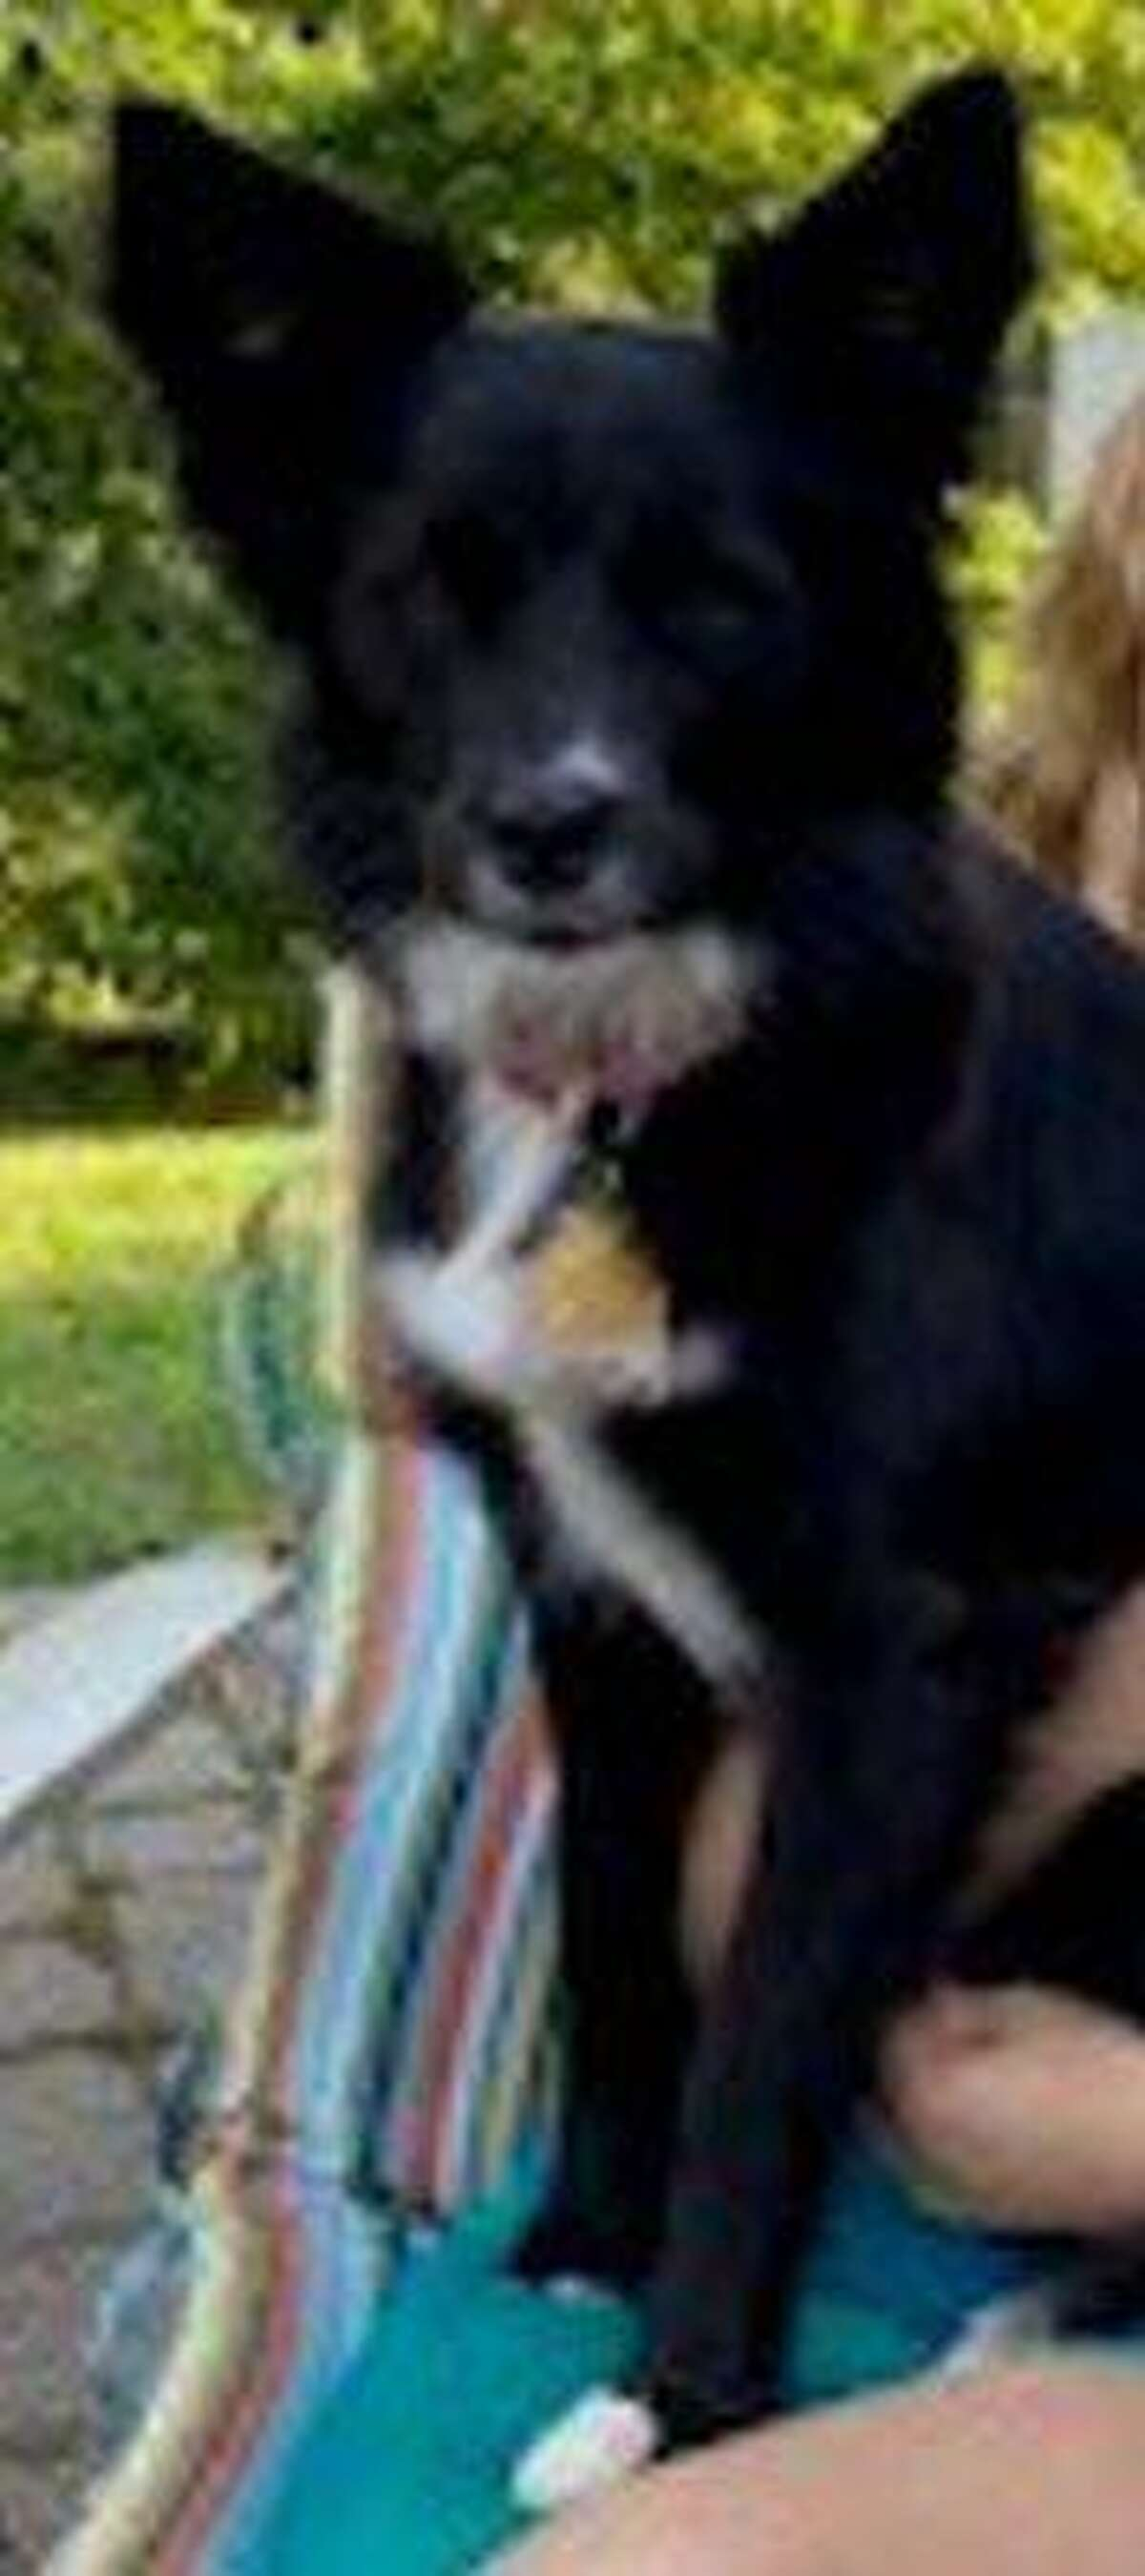 Kelly, a dog who went missing after a crash in South Windsor, Conn. on Monday, July 12, 2021. Police said the dog was located the following day and has been reunited with the owner, but it's unclear where Kelly was found or how.